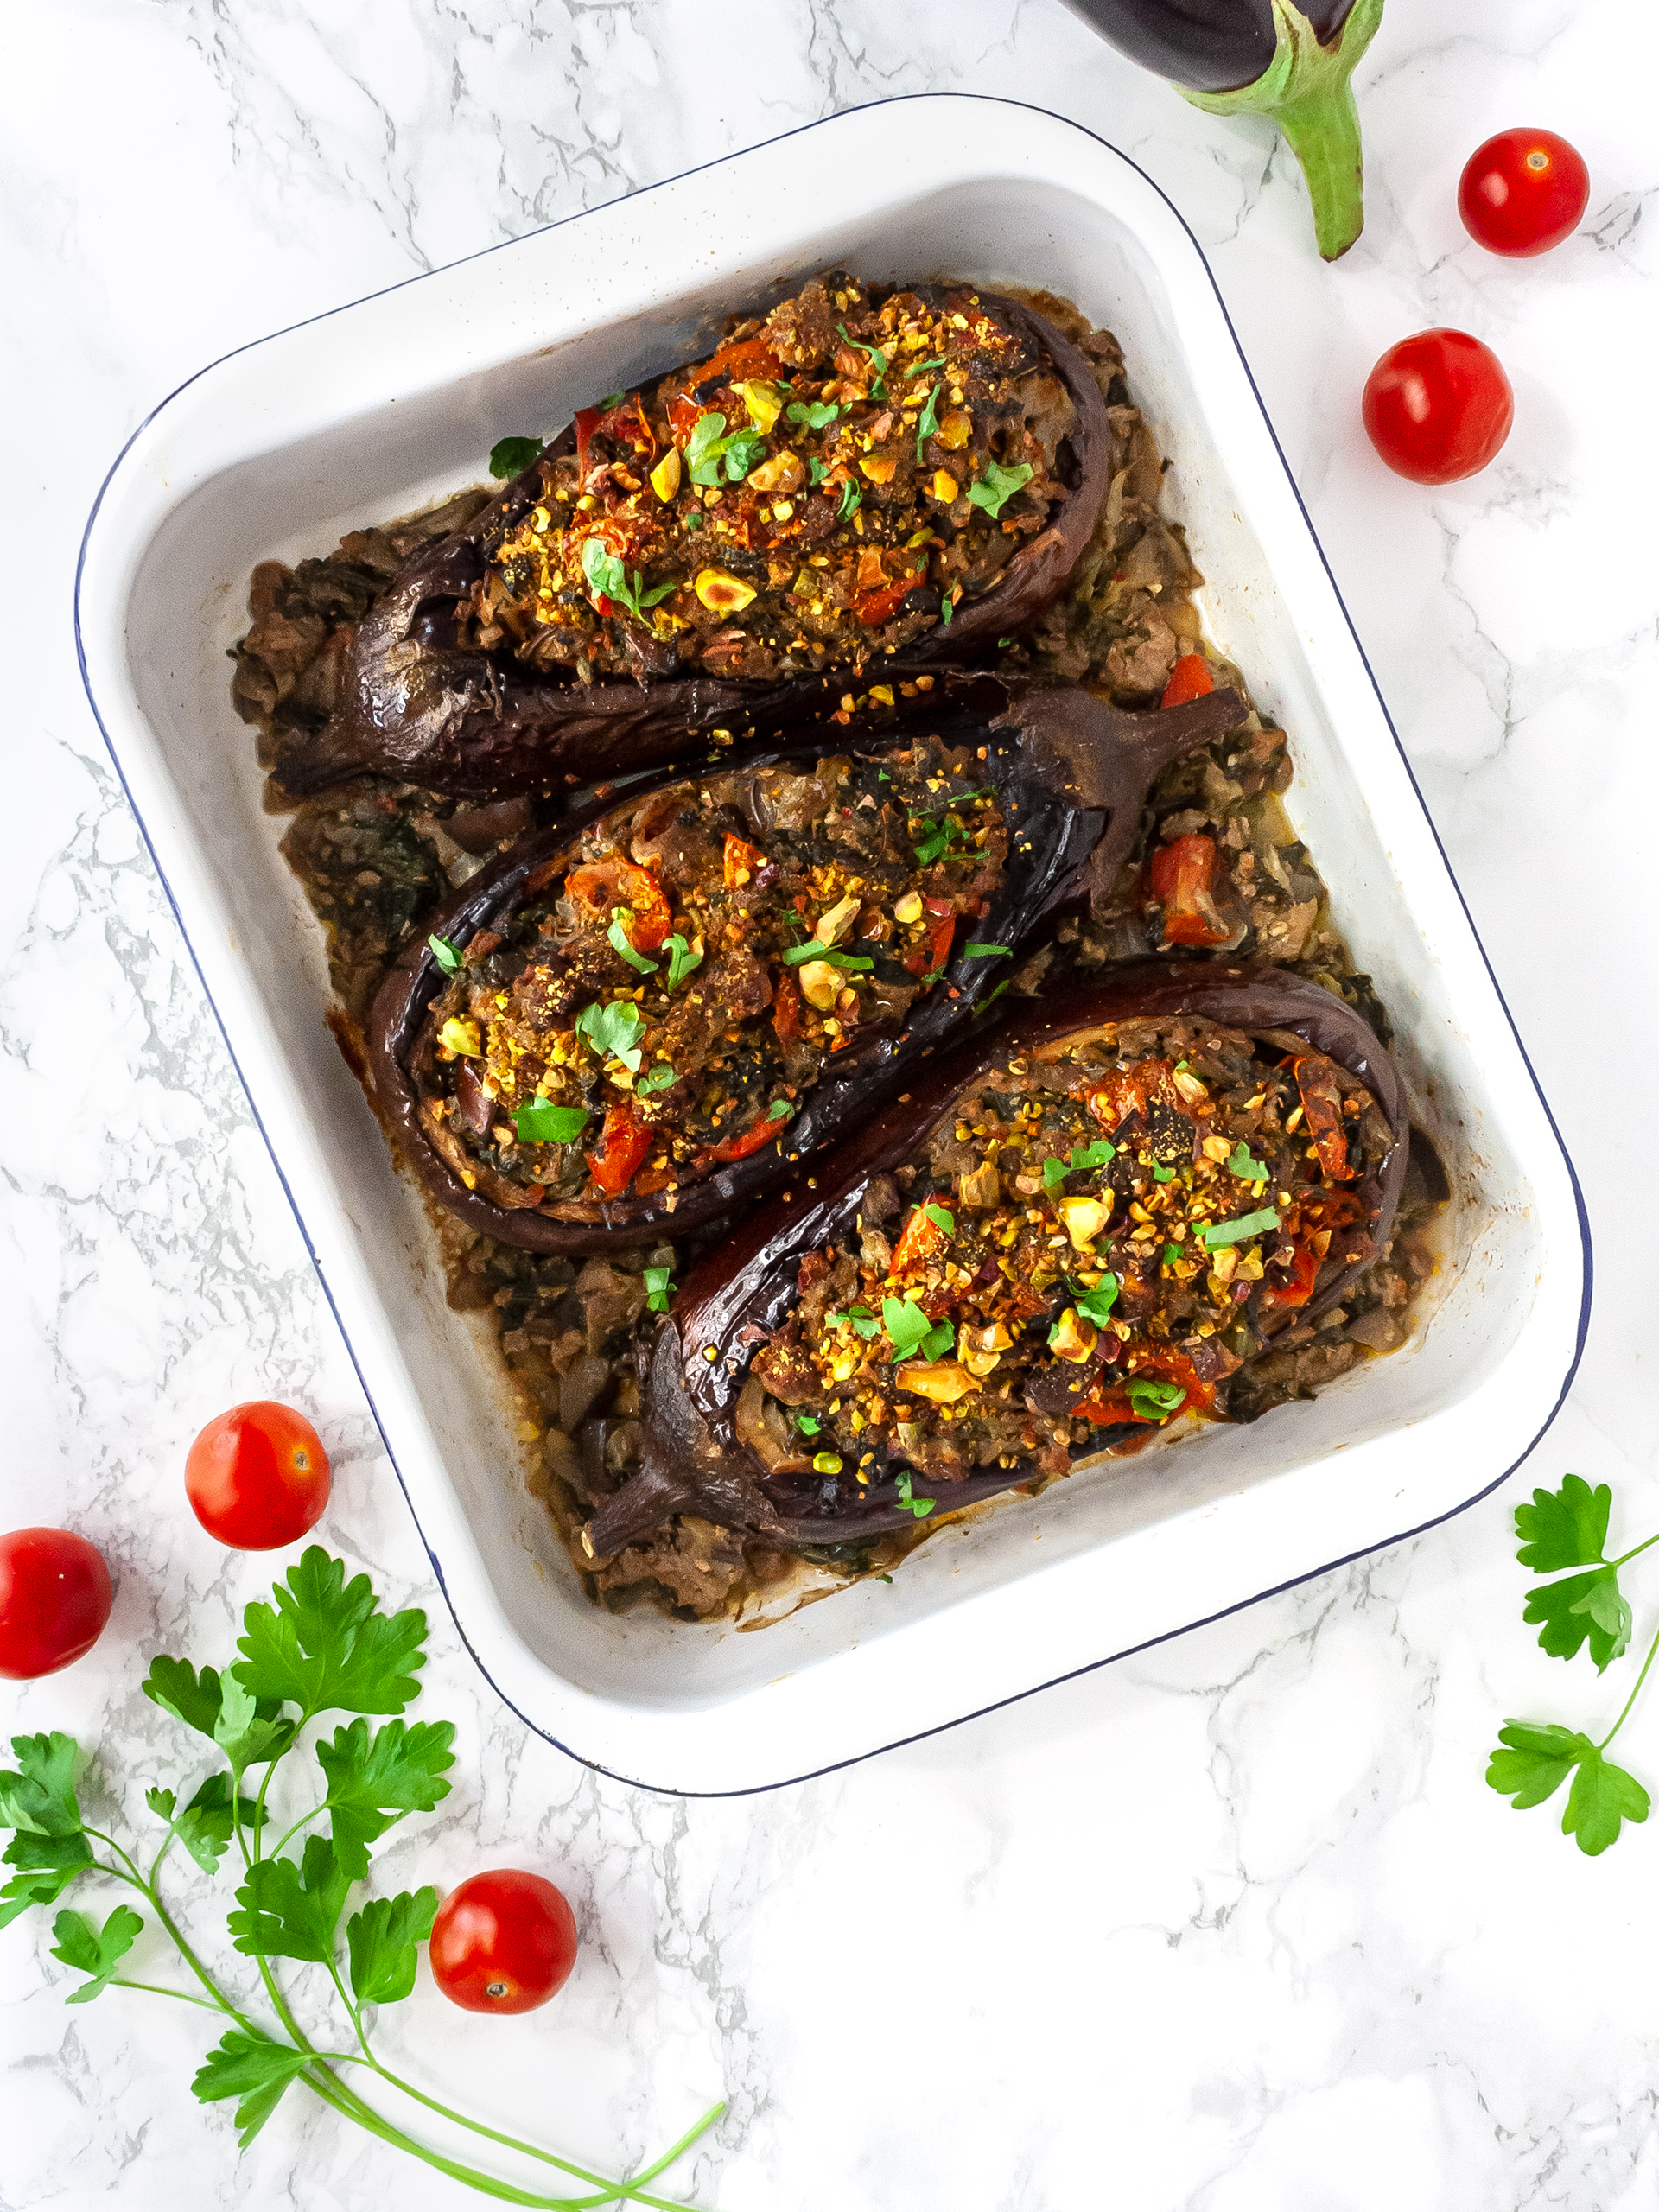 Keto Stuffed Eggplant Recipe Thumbnail